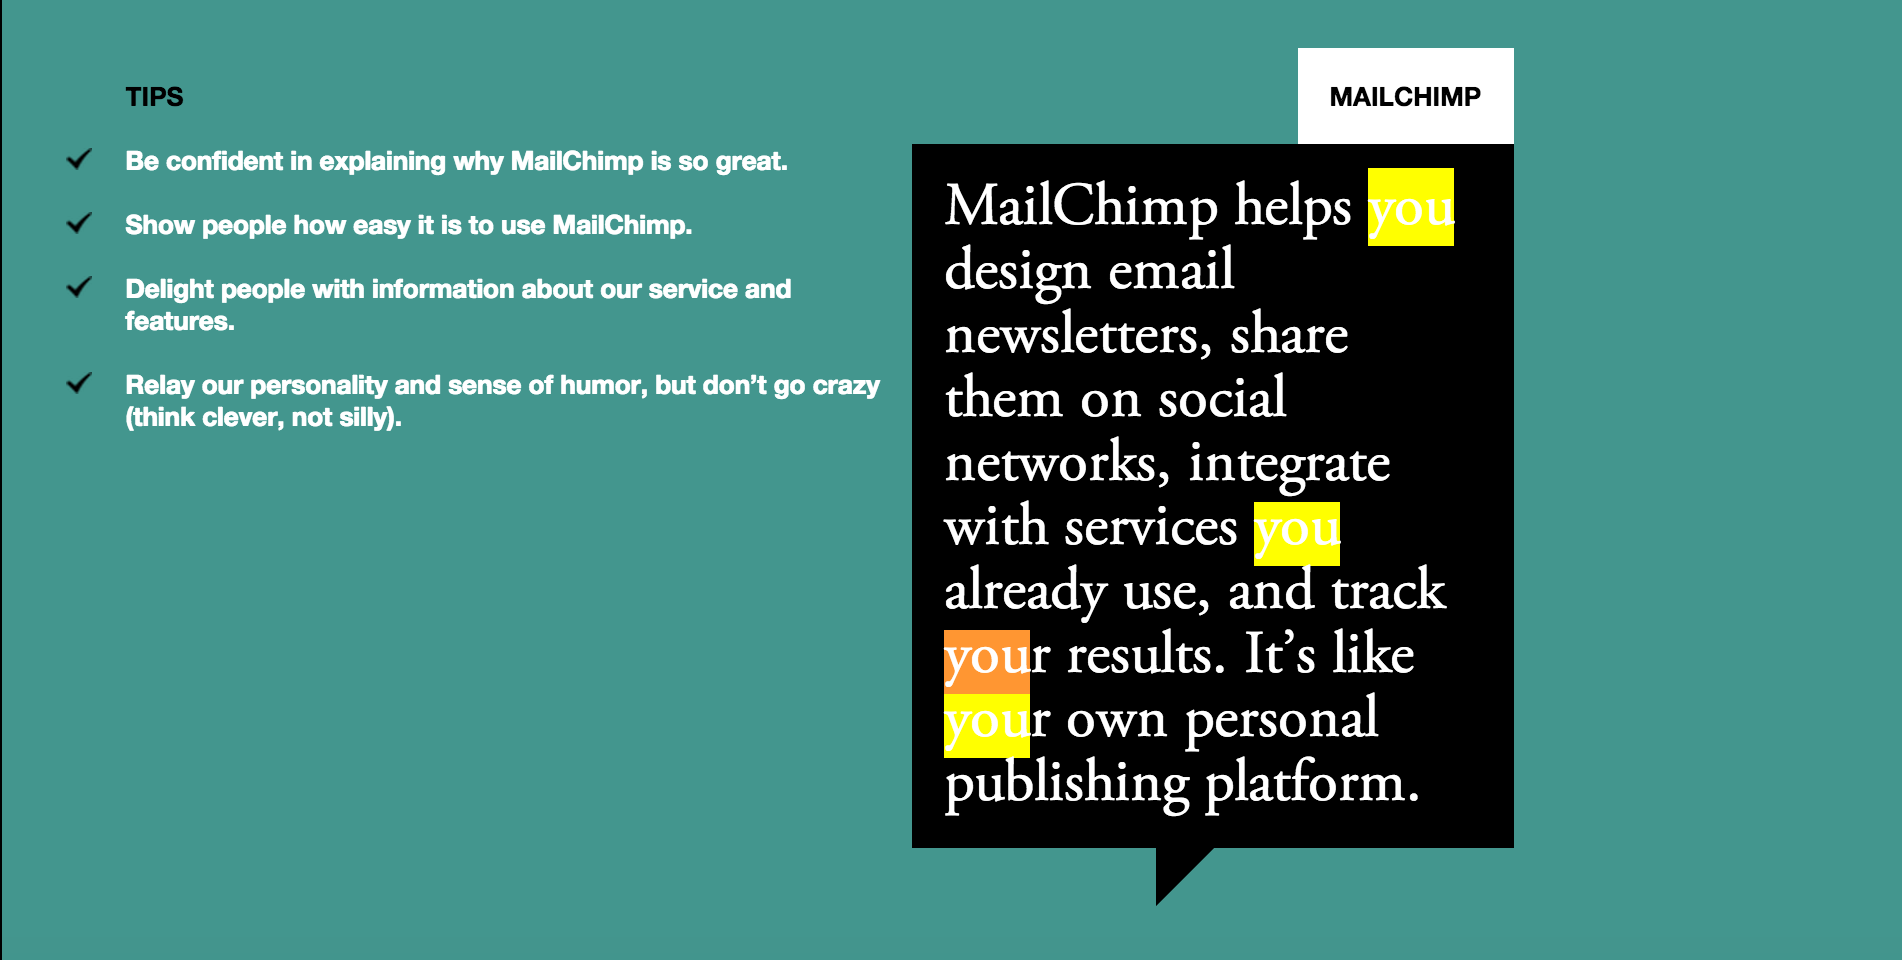 Screenshot from MailChimp's Voice & Tone website